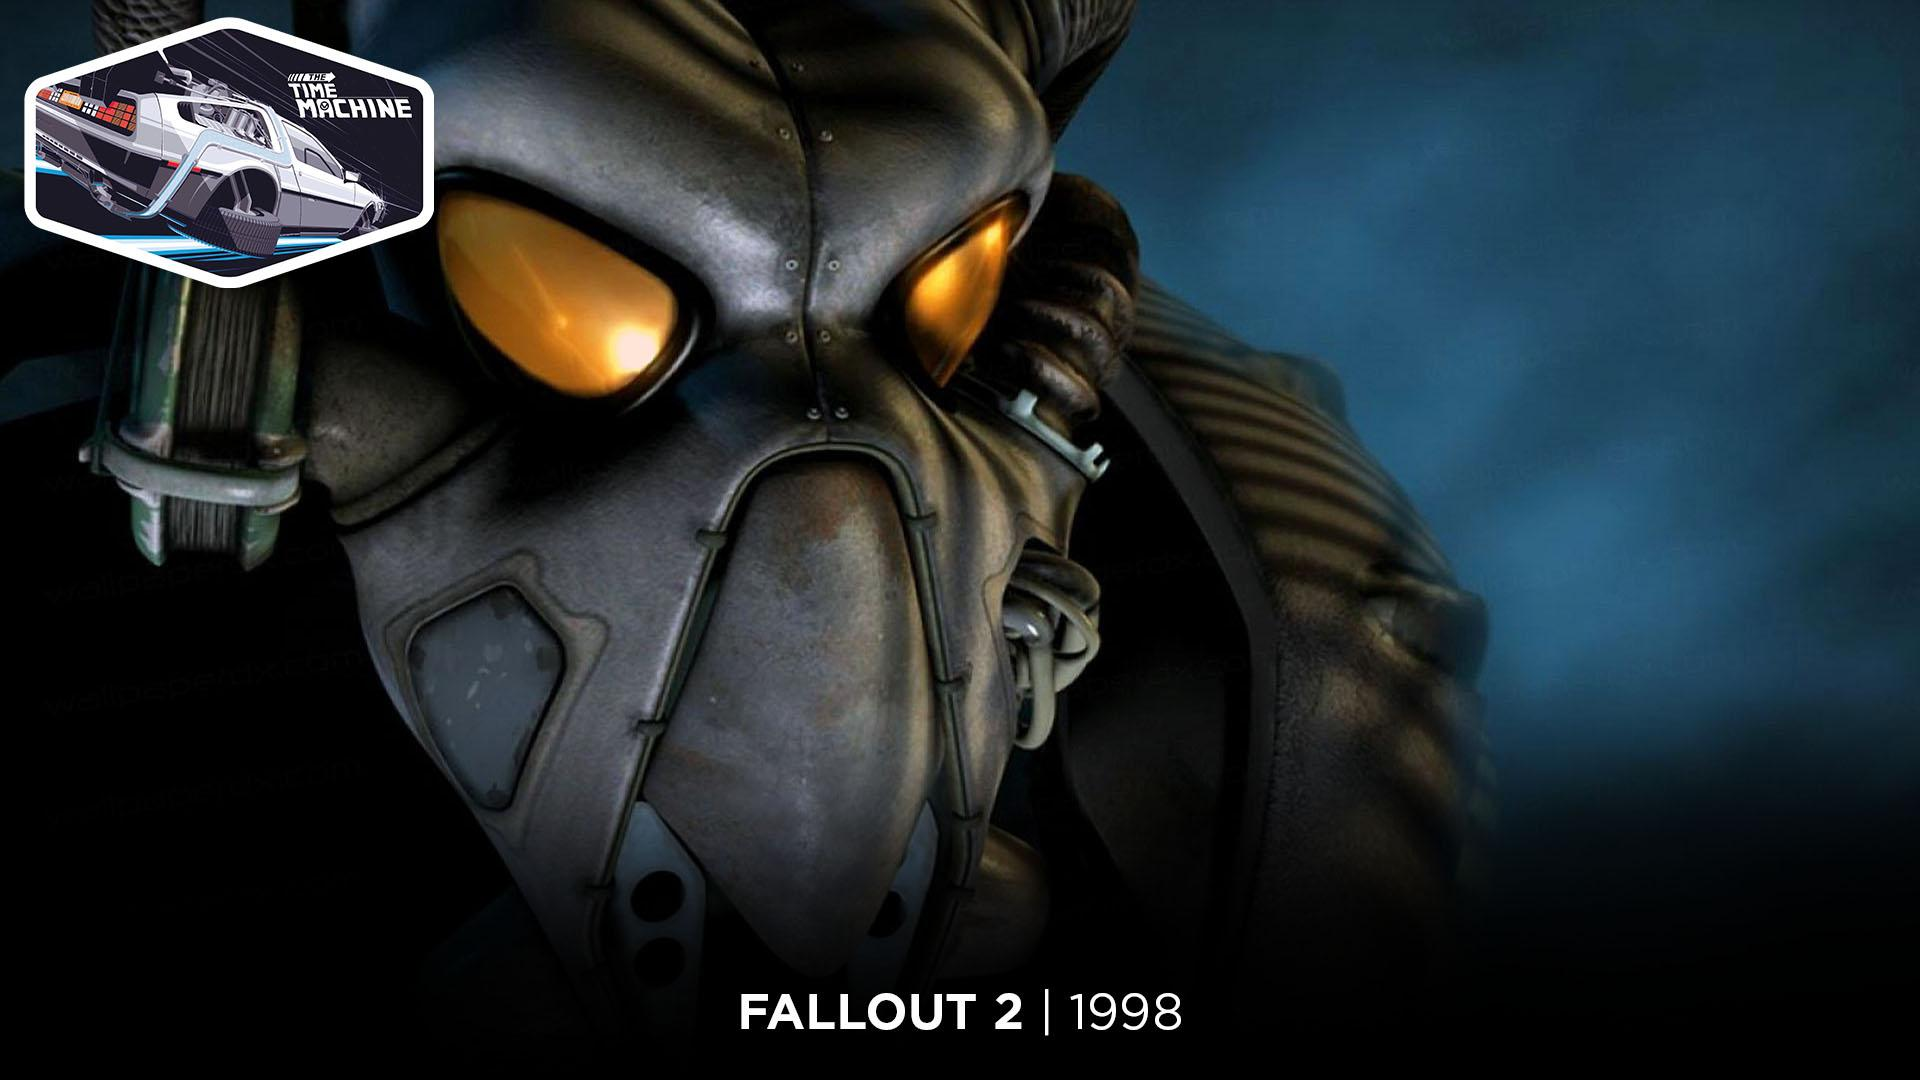 The Time Machine - La storia di Fallout